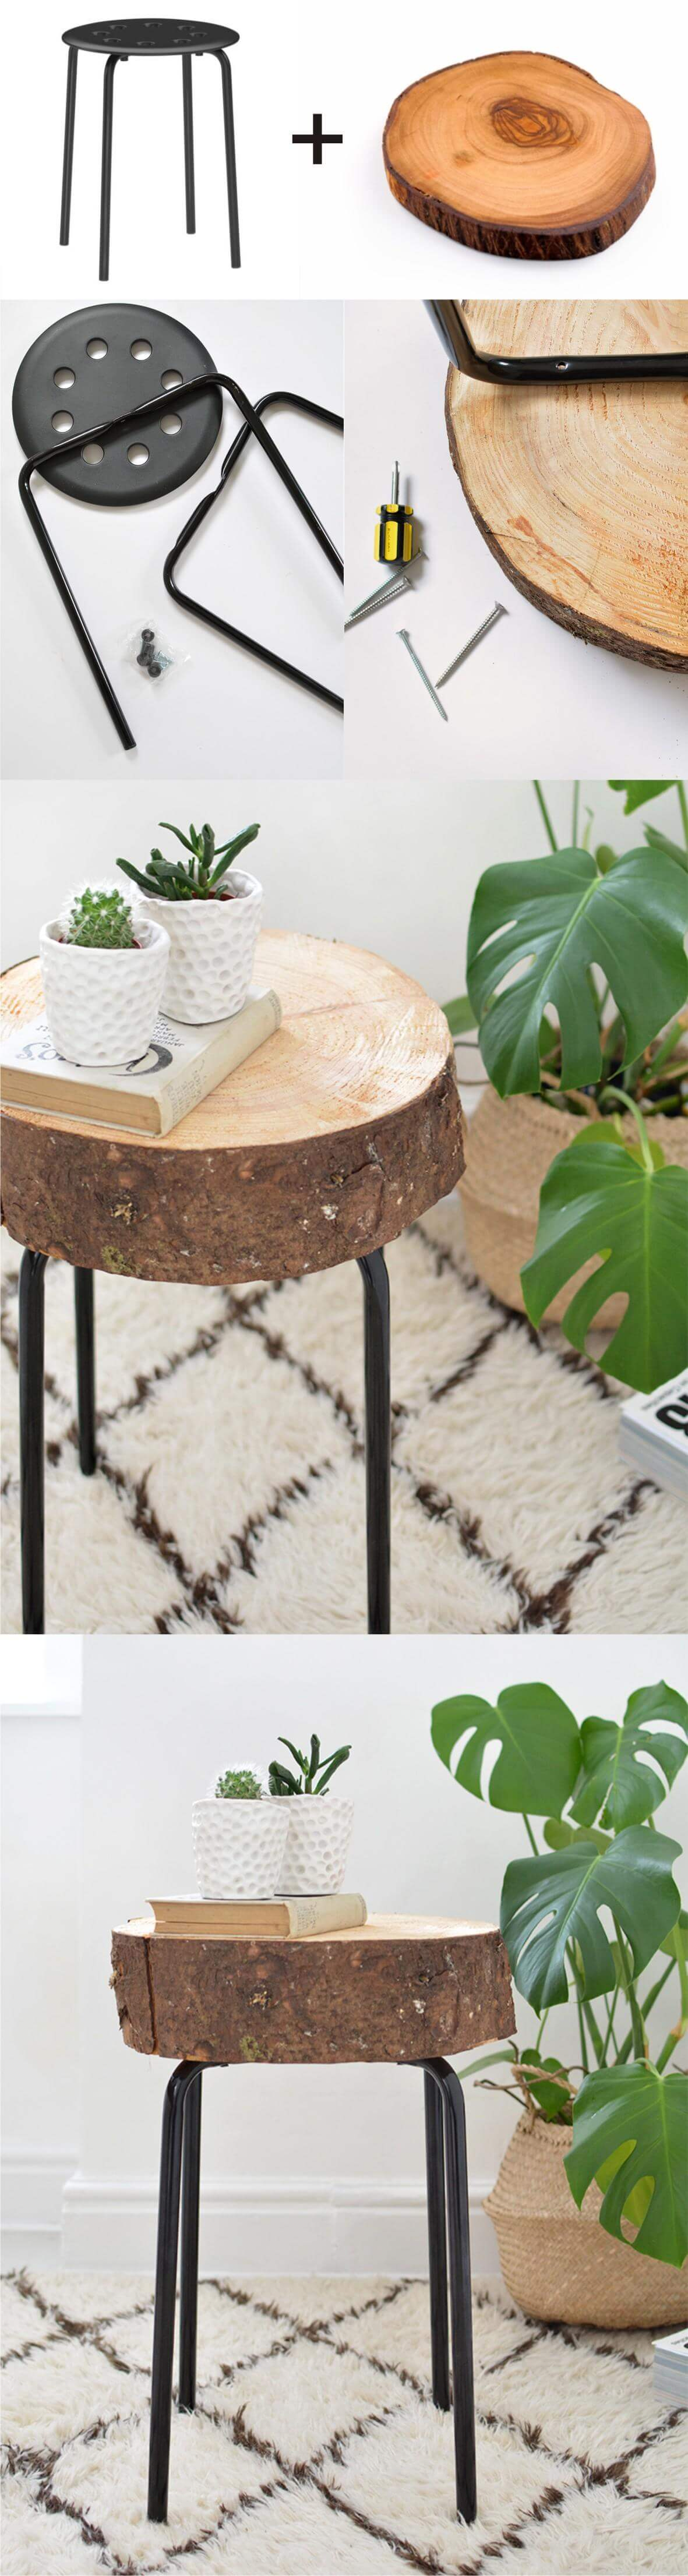 IKEA Stool and Tree-Stump Succulent Stand